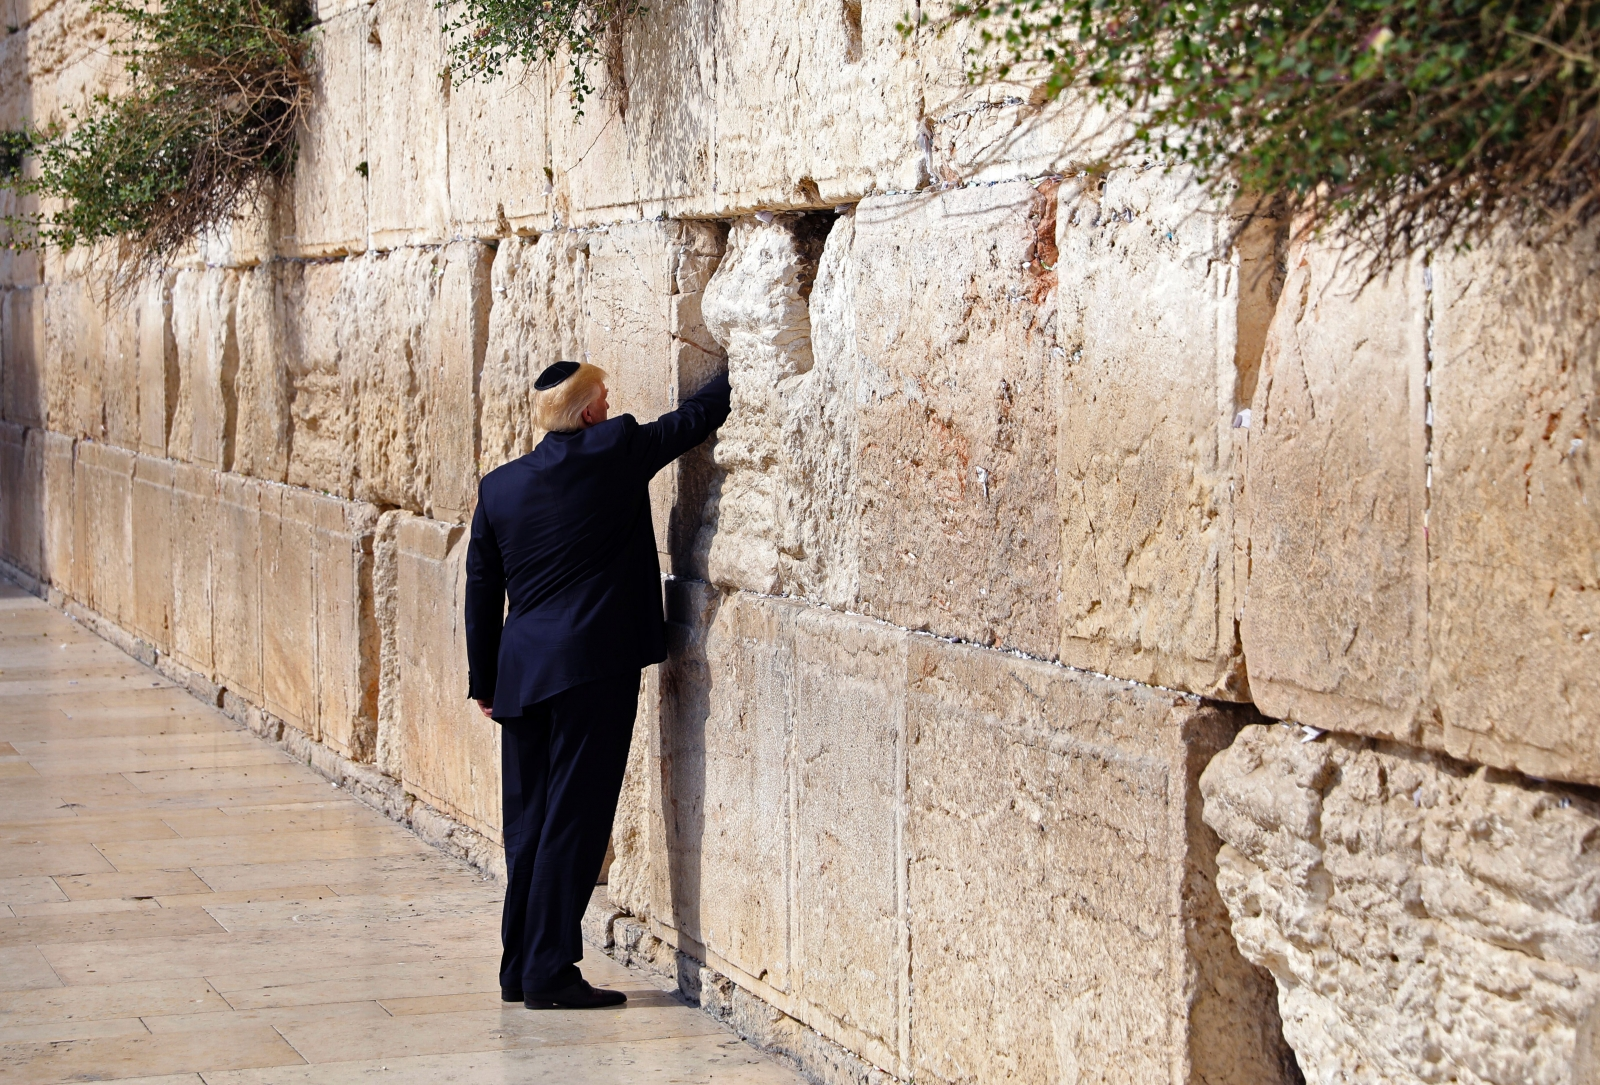 Donald Trump Western Wall